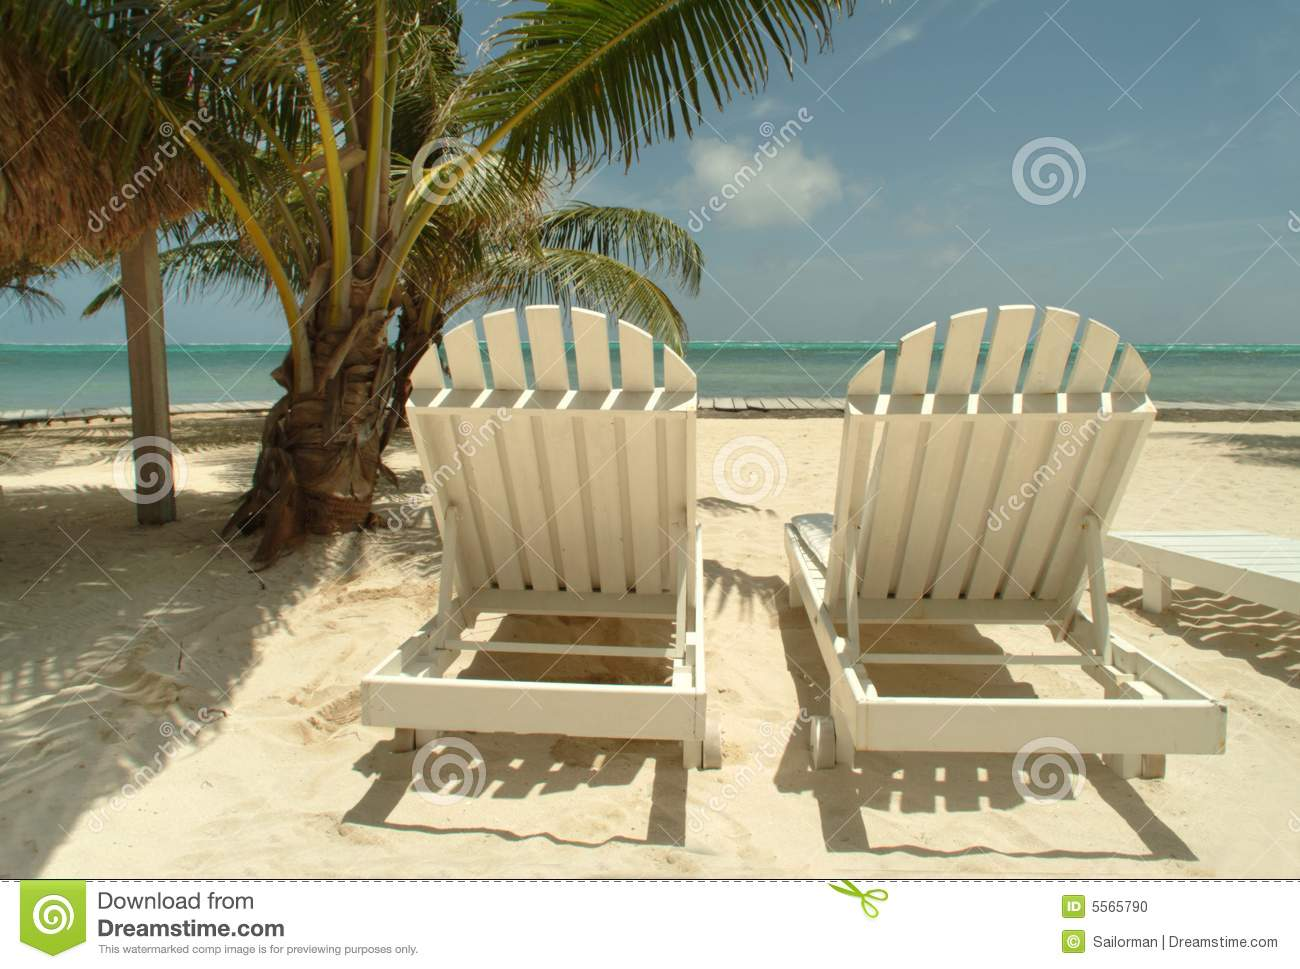 High Quality Chaise Lounge Chairs On A Tropical Beach.